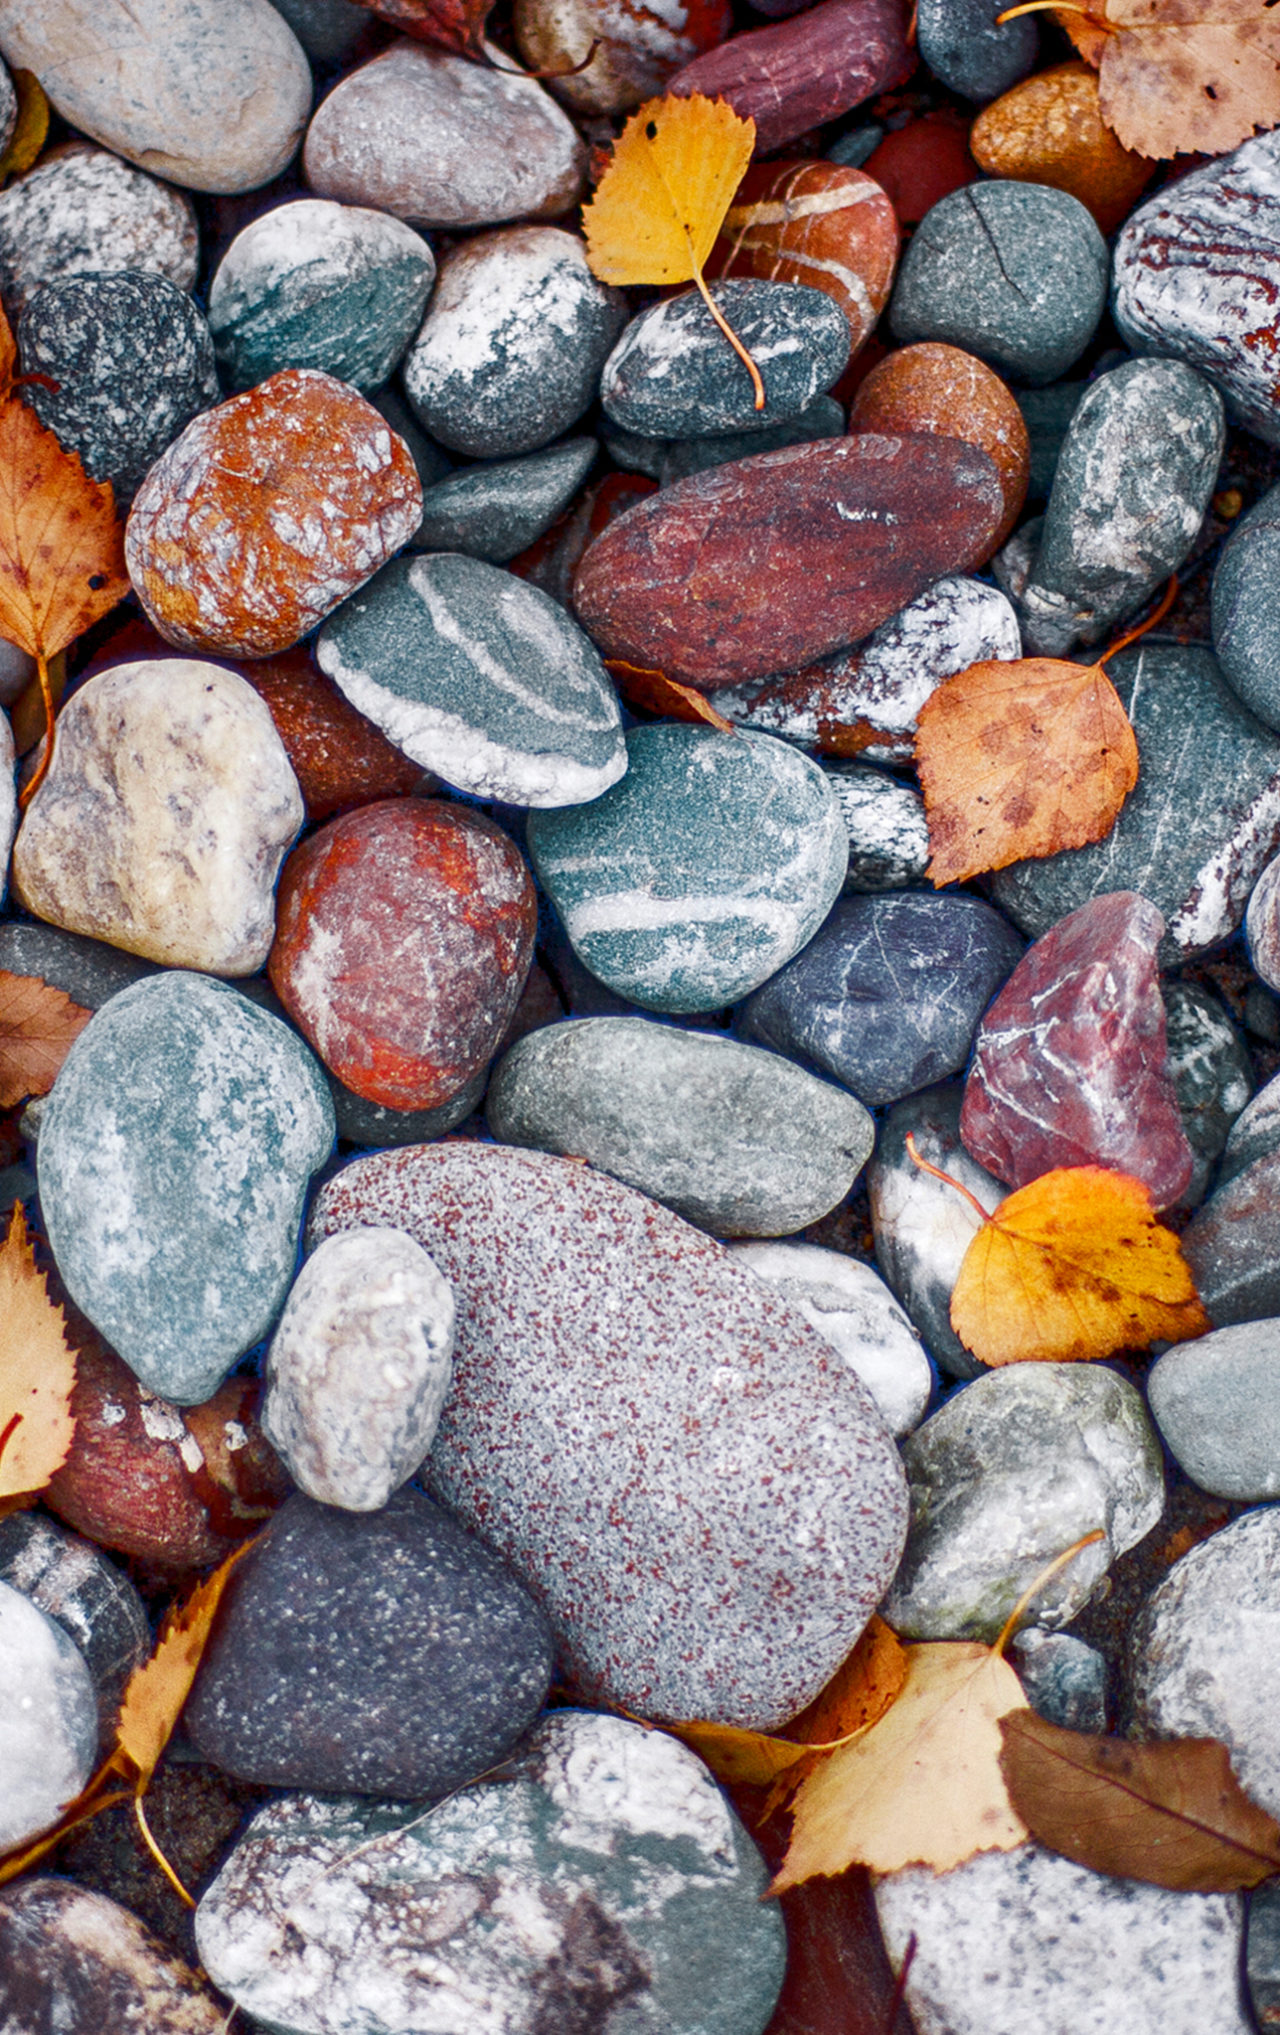 Wet river stones of different shapes and colours.